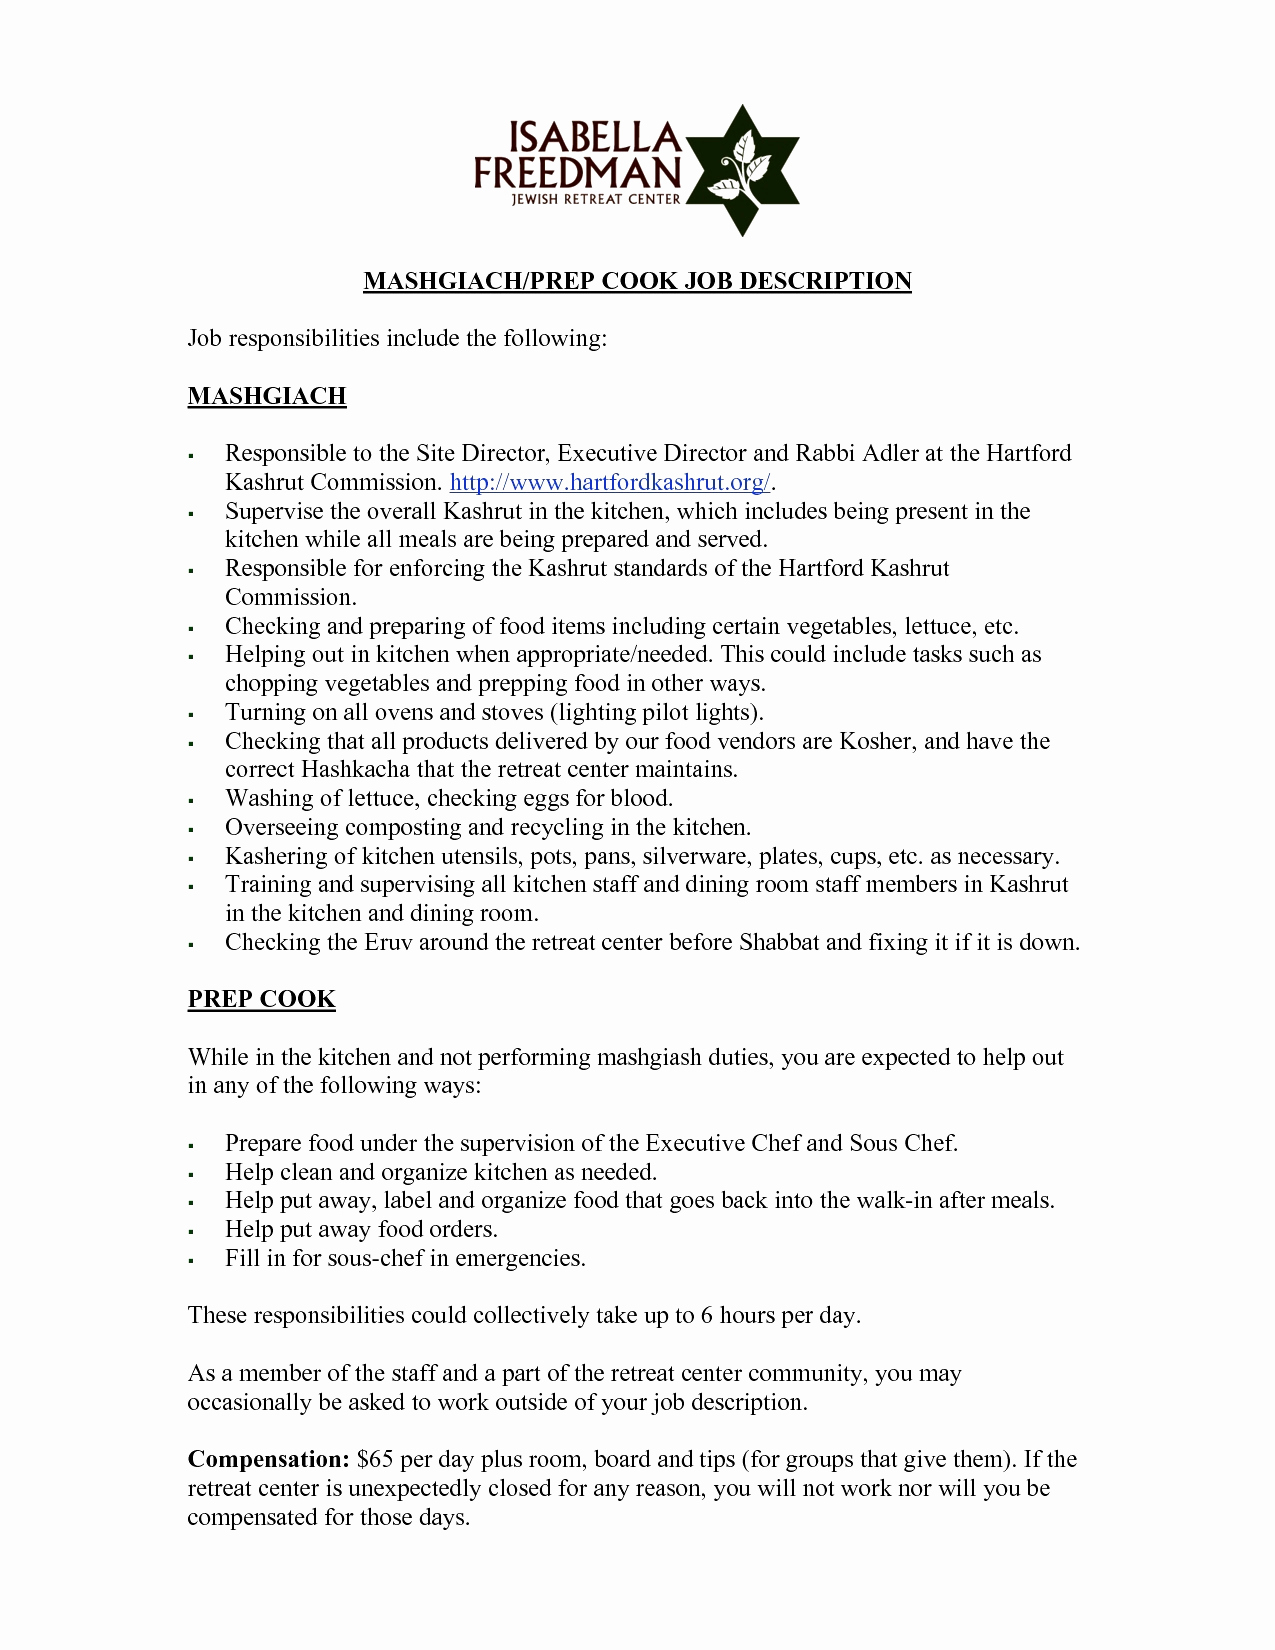 Awesome Cover Letter Template - Cover Letter Font Style Awesome Resume and Cover Letter Template